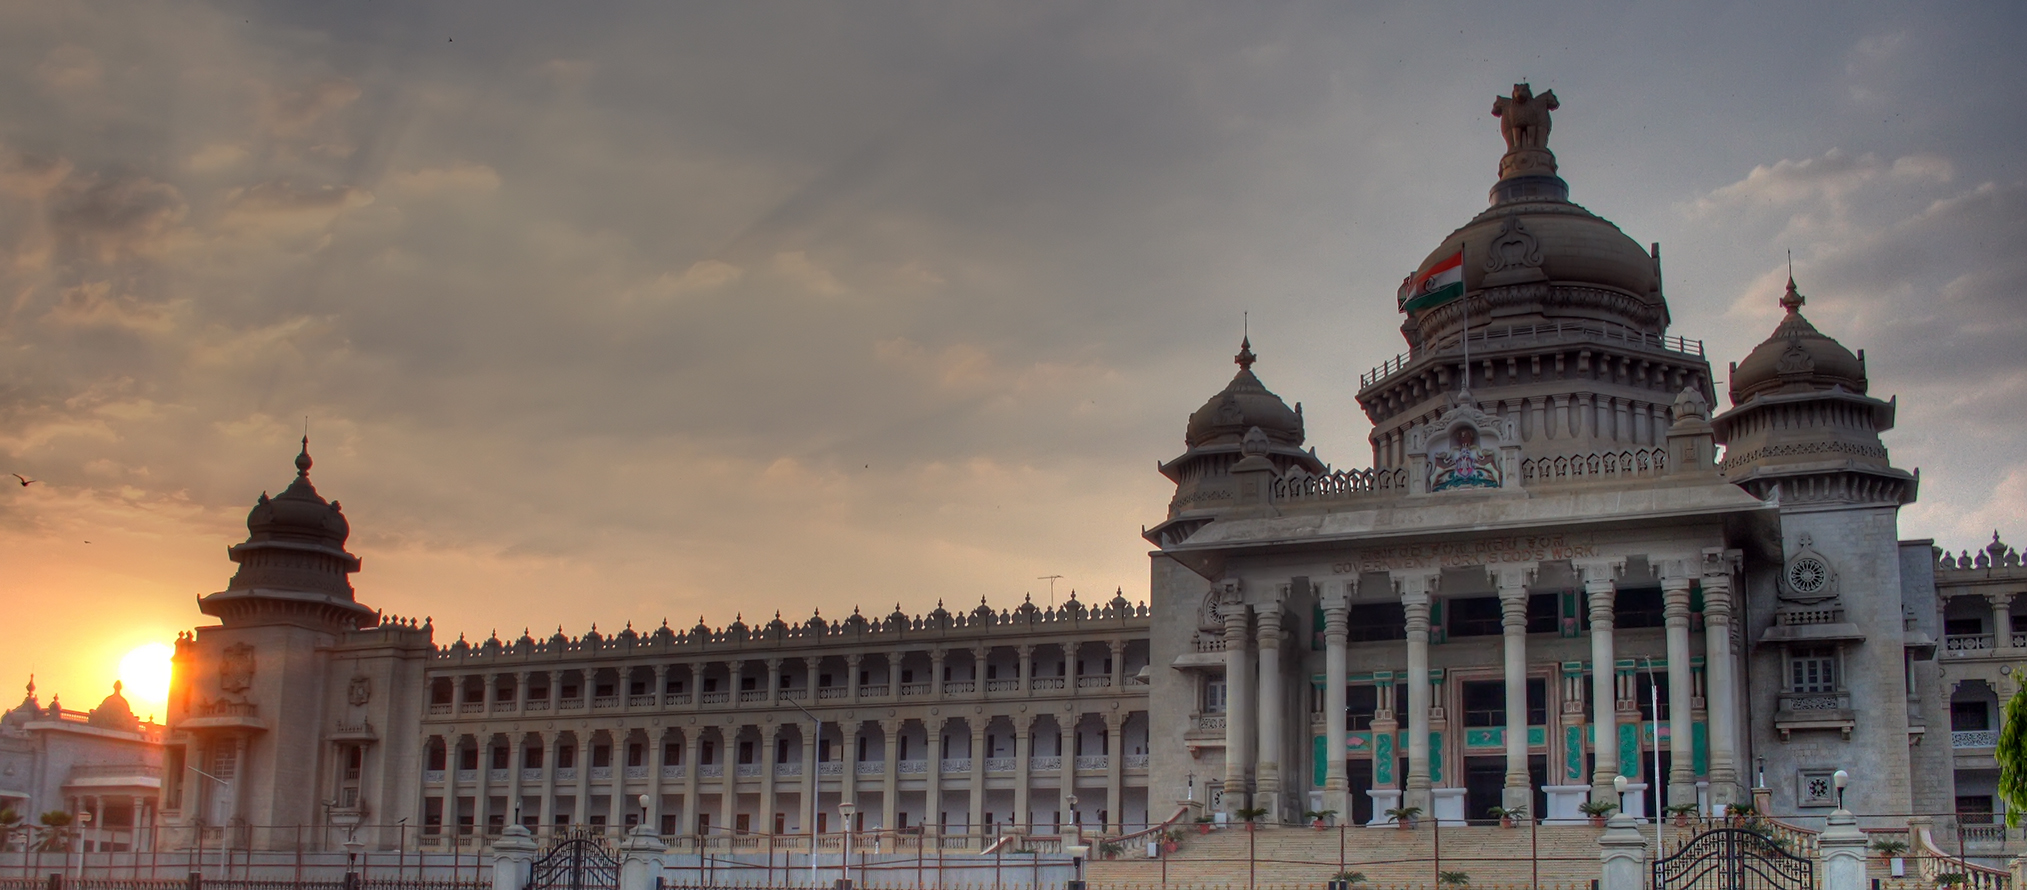 http://upload.wikimedia.org/wikipedia/commons/d/d2/Vidhana_Soudha_sunset.jpg